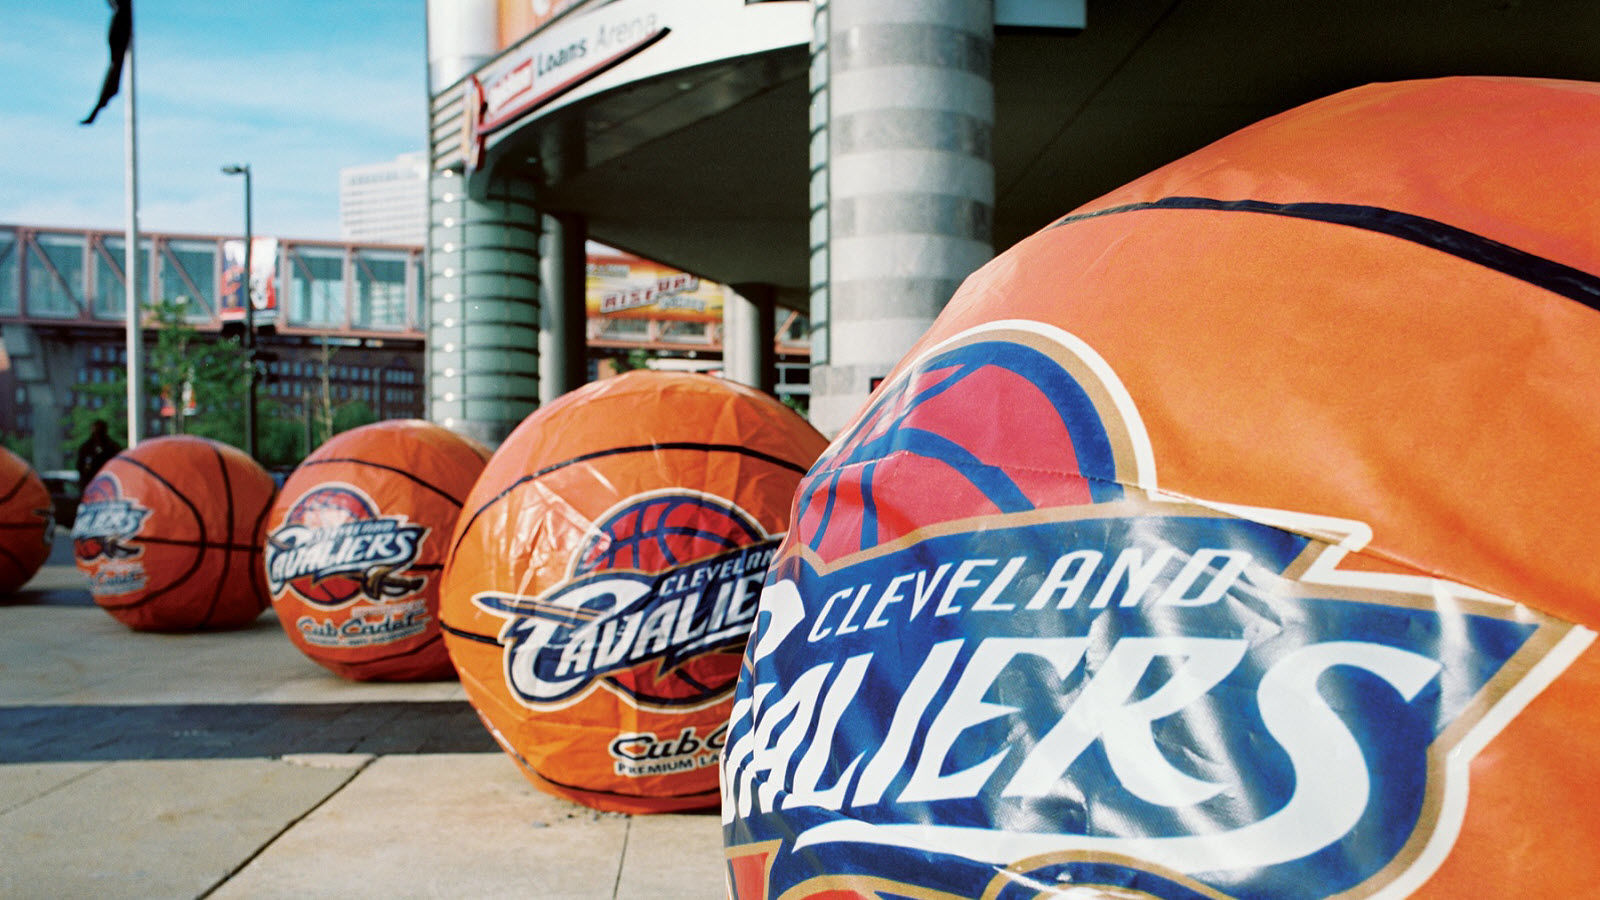 Things to do in Cleveland - Quicken Loans Arena